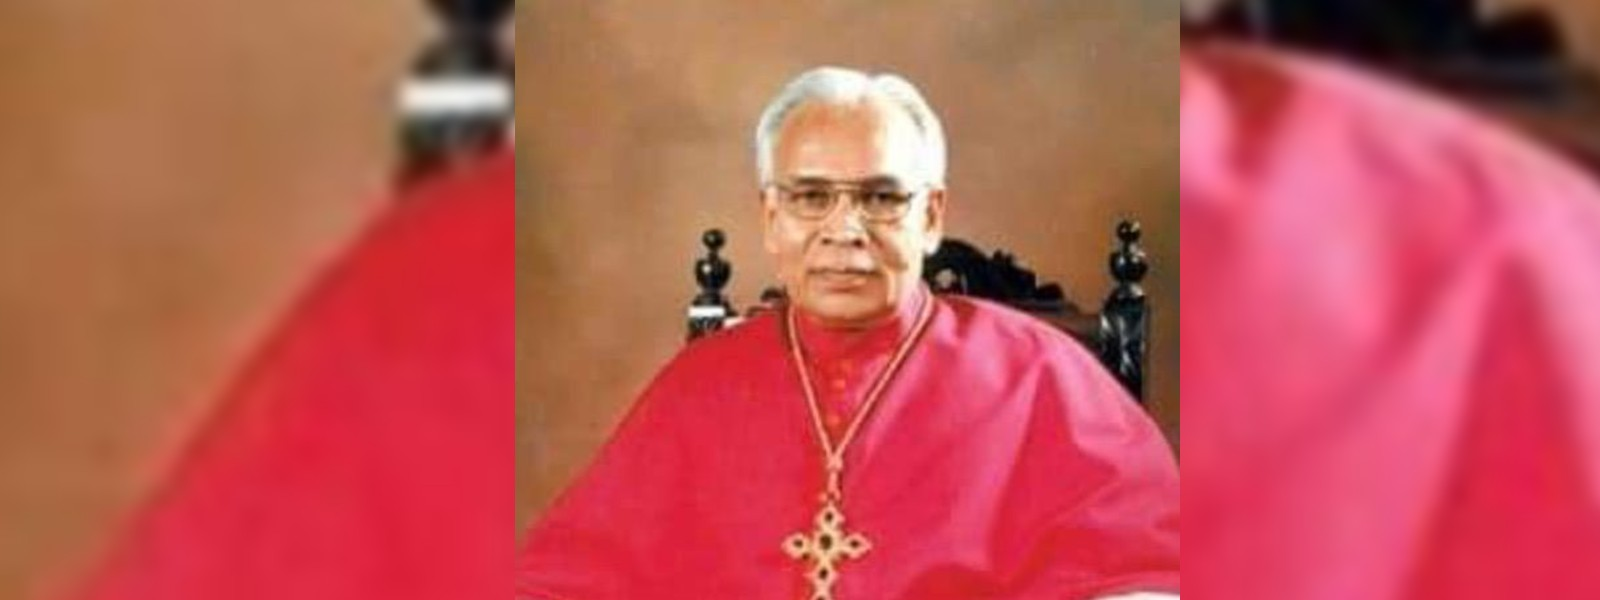 Former Archbishop of Colombo, His Lordship Nicholas Marcus Fernando passes away